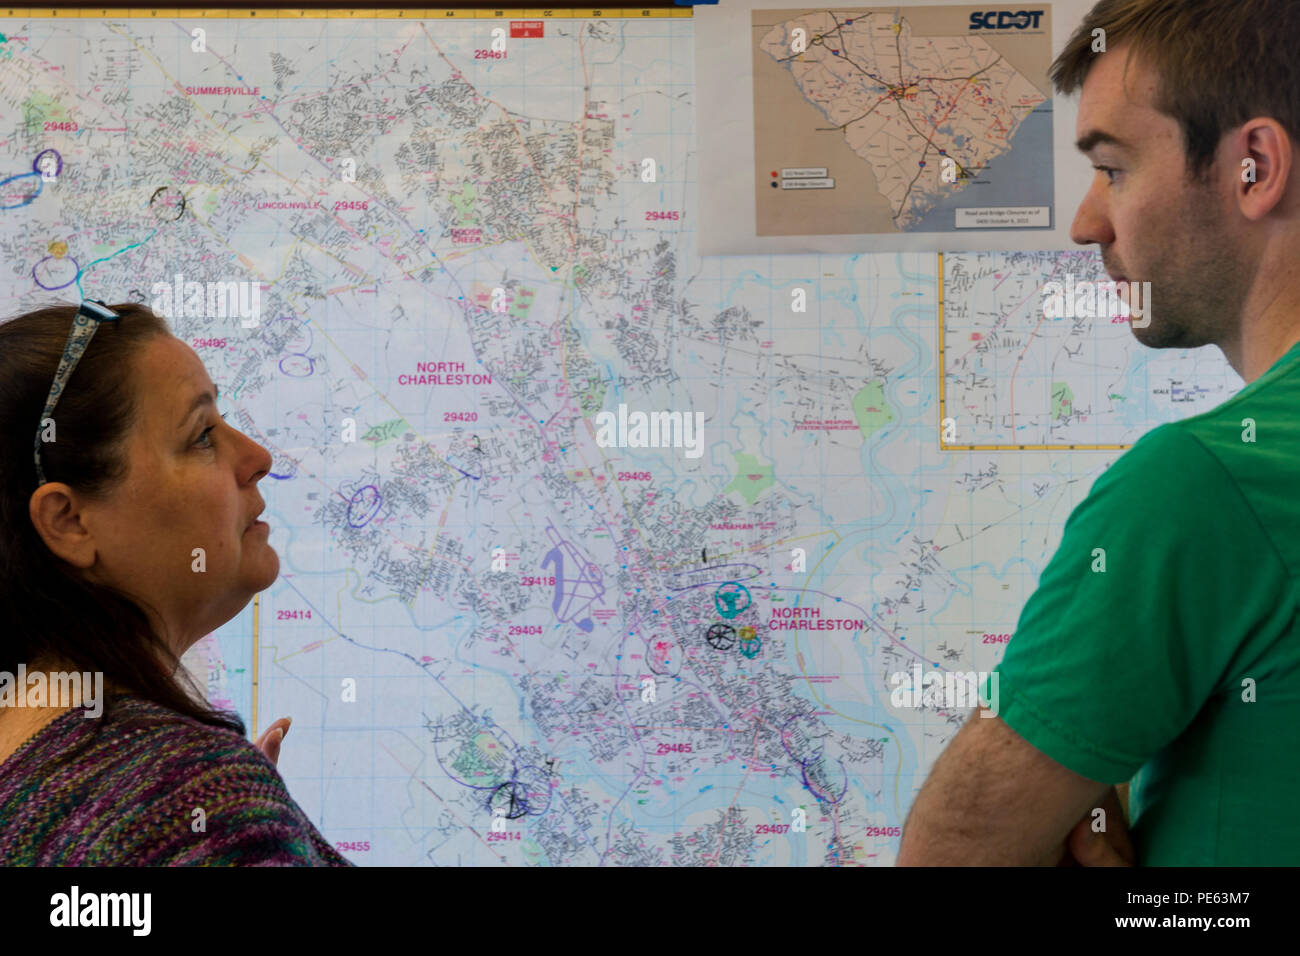 Terry Kornahrens, disaster assessment lead for the Palmetto SC Region of the American Red Cross, and Jason Trinklein, a Red Cross volunteer from New York, discuss flood-relief operations Oct. 8, 2015, in North Charleston, S.C. The historic flooding, which caused damage, destruction and death throughout South Carolina, was the result of record-setting rainfall during what was considered a 1,000-year rain event delivered by Hurricane Joaquin as it went up the East Coast. The Palmetto SC Region of the American Red Cross provides services to residents of South Carolina including disaster relief, h - Stock Image